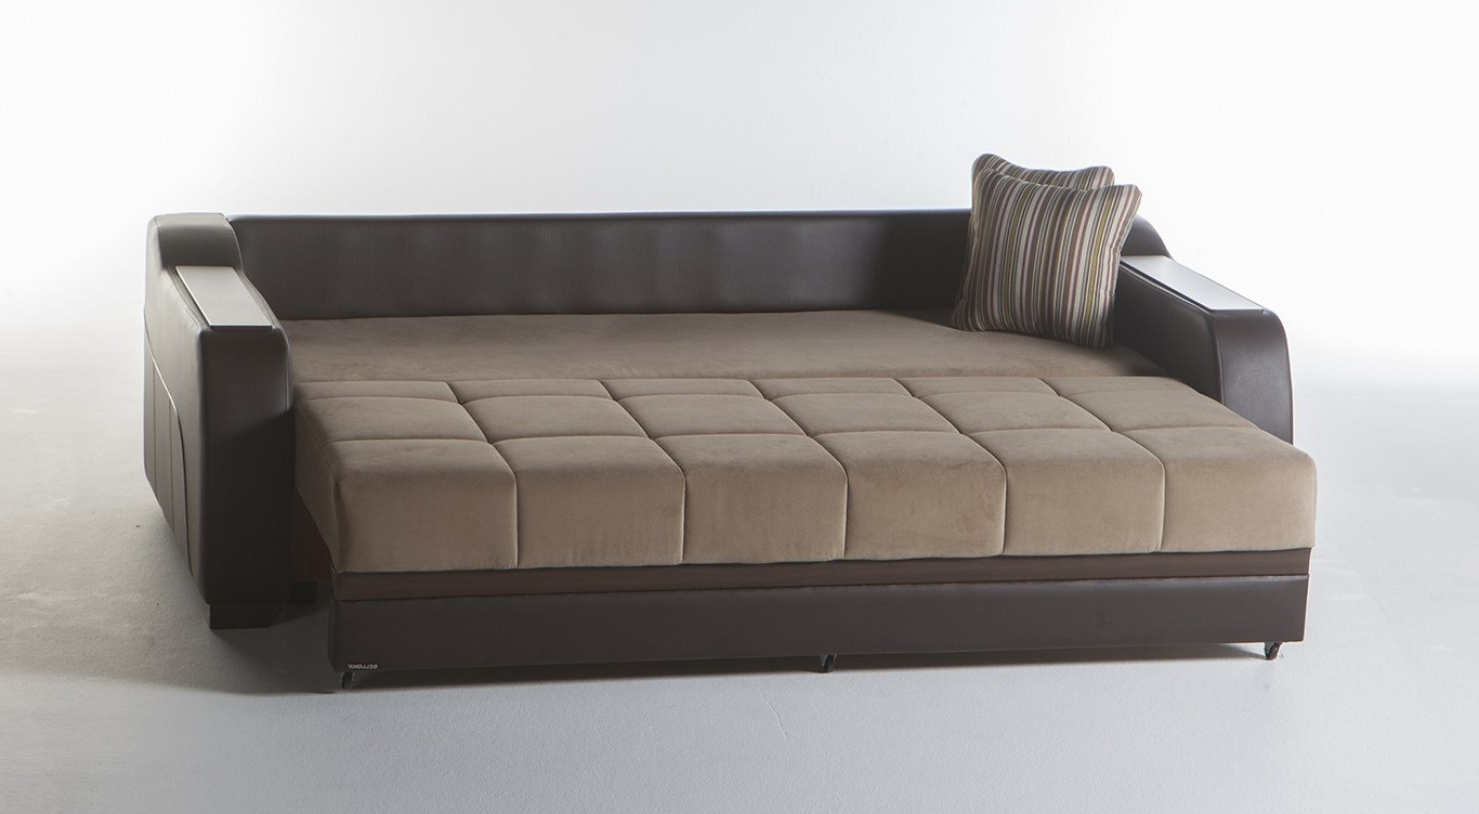 Catosfera Within Most Recently Released Sectional Sofas In Philippines (View 4 of 20)